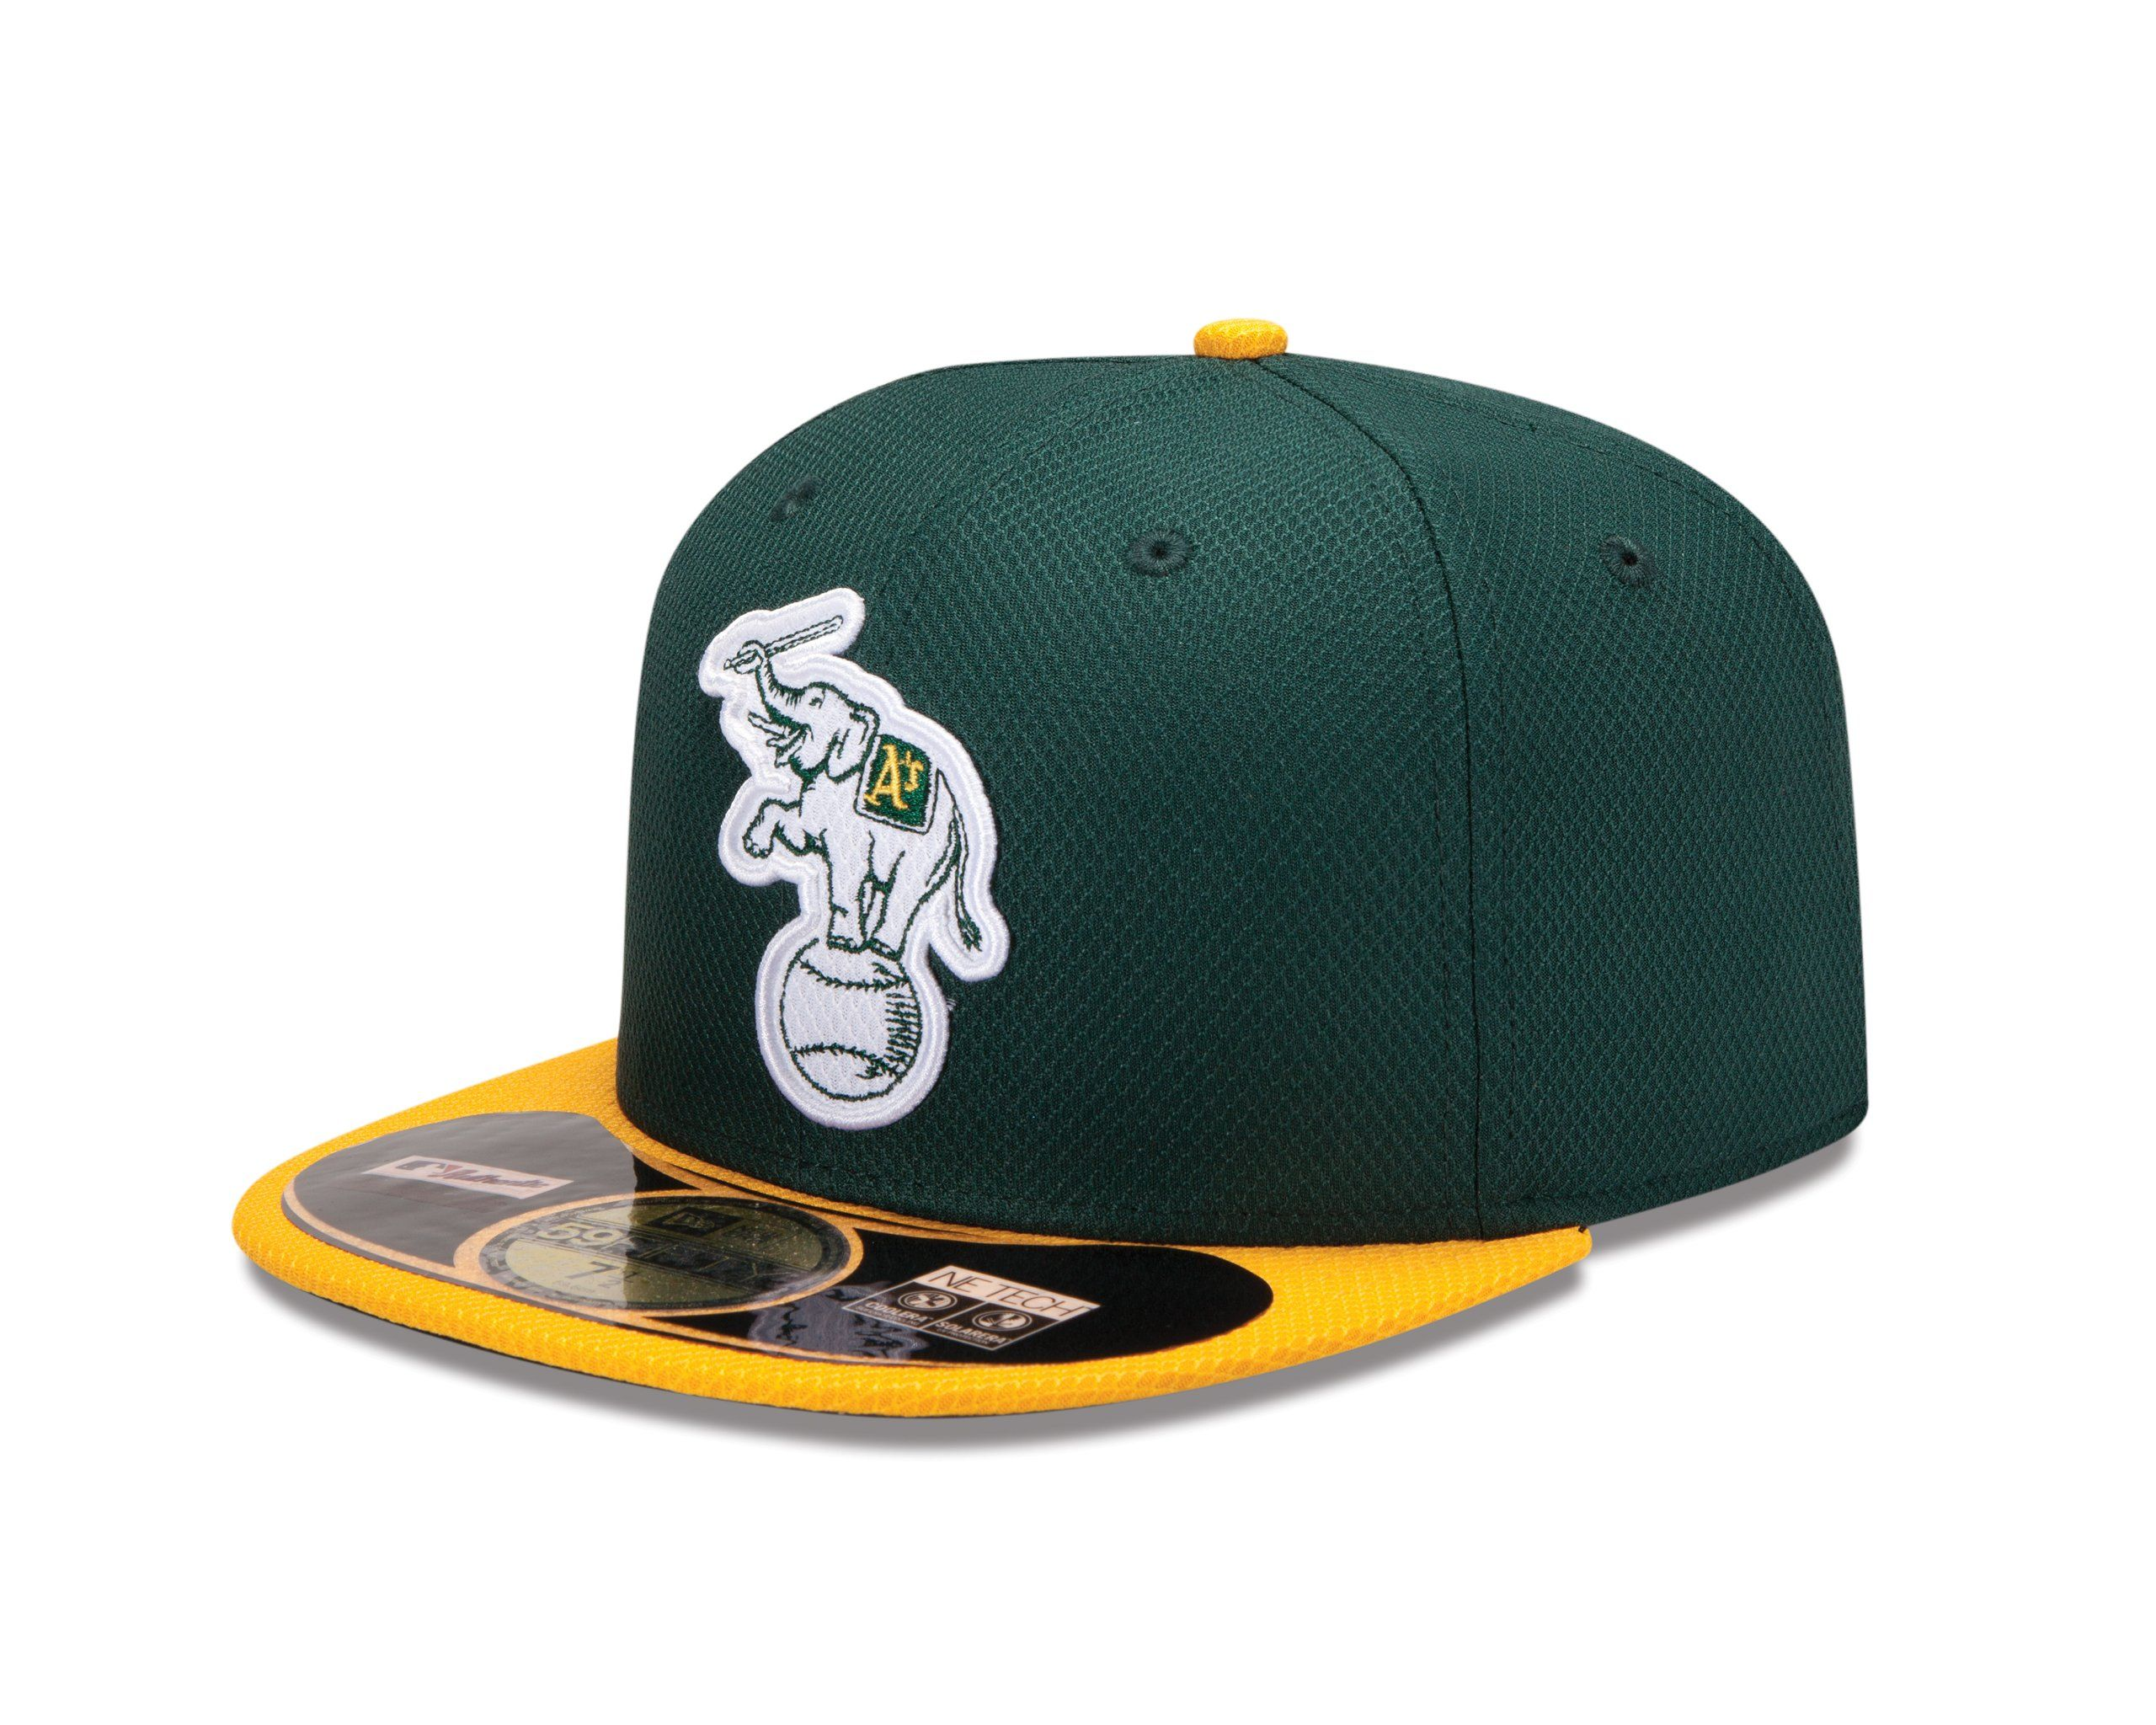 420b8c3da36ce New Era 59Fifty Oakland A s batting practice hat